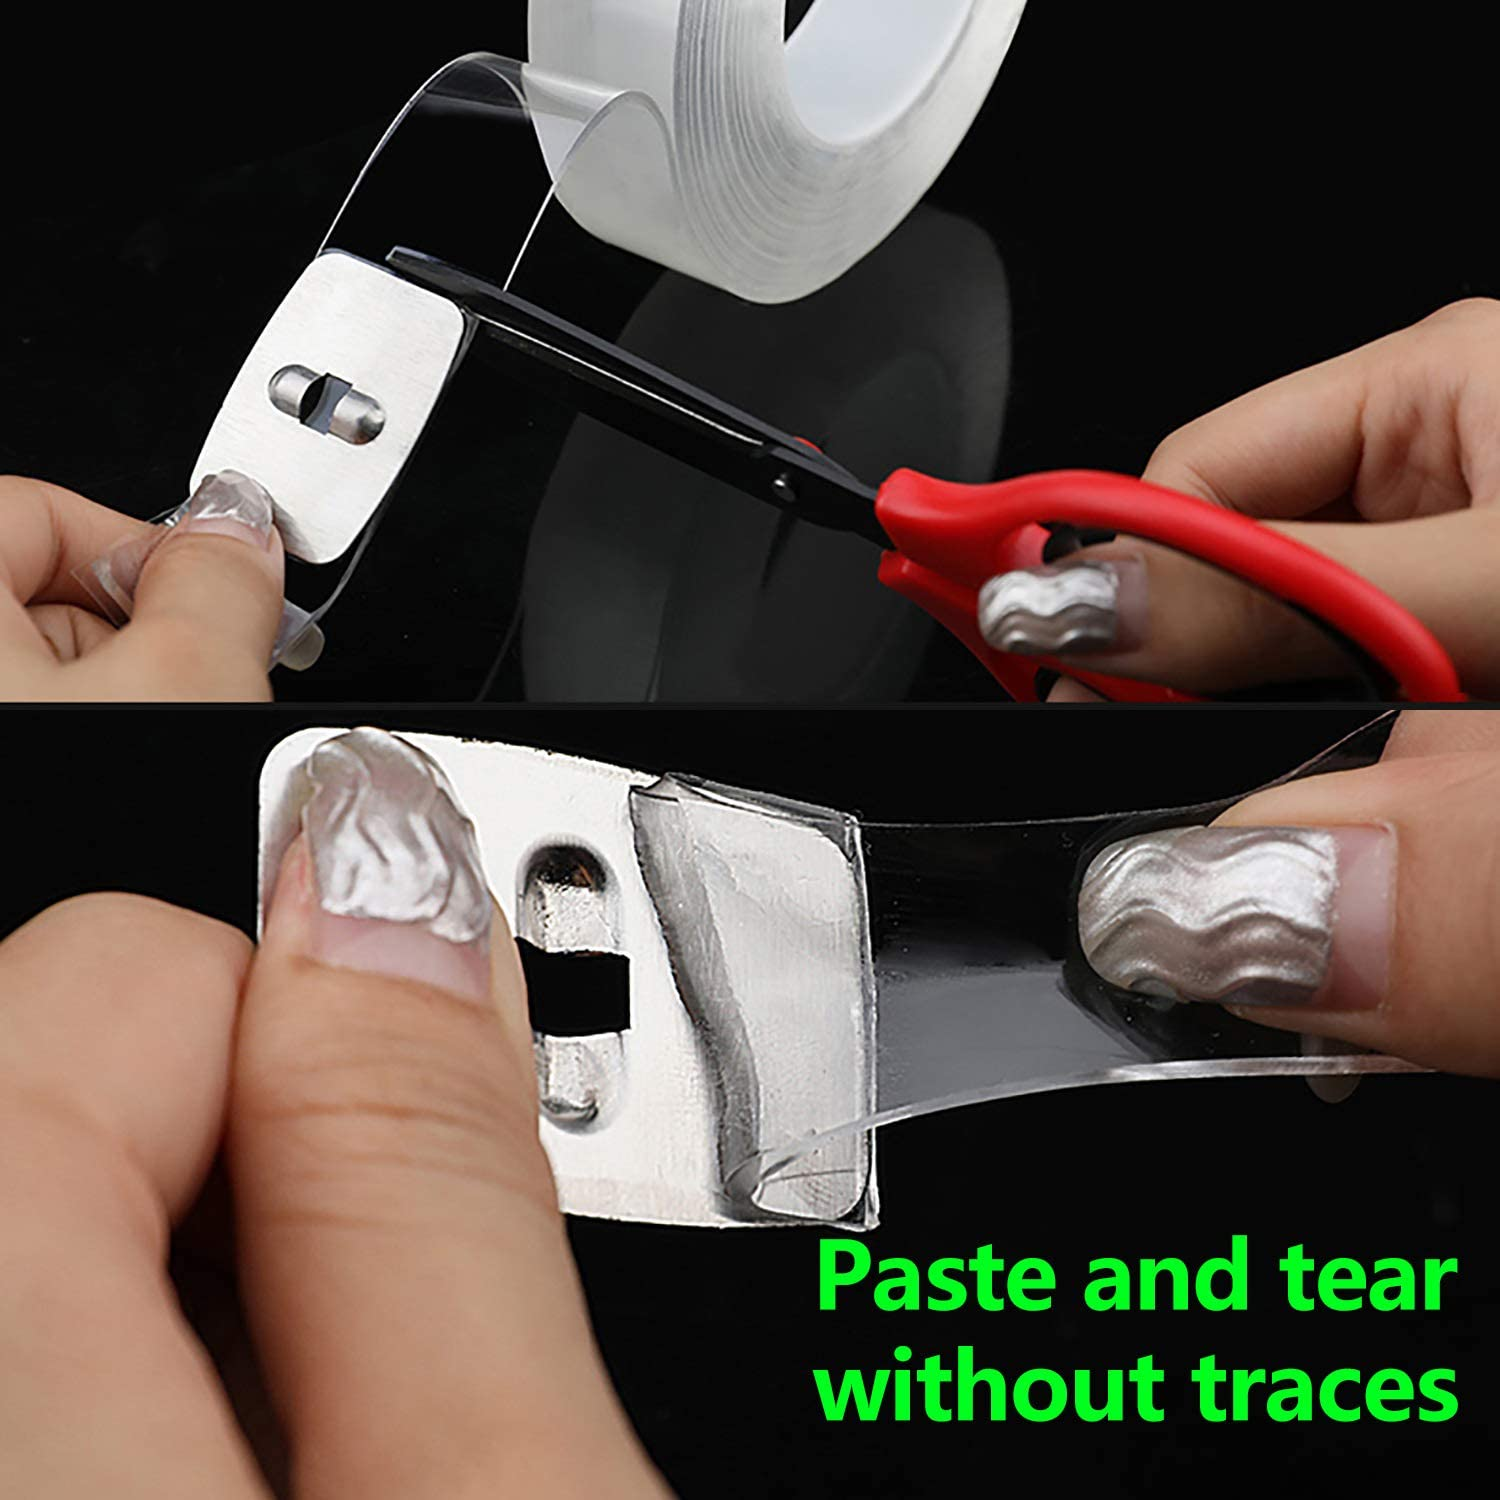 Gel Grip Tape Duty Clear Silicone Tape for Paste Photos Fix Carpet Mats Pen Key 9.85ft Nano Adhesive Tape Double Sided Tape Traceless Washable Removable Reusable Many Times Adhesive